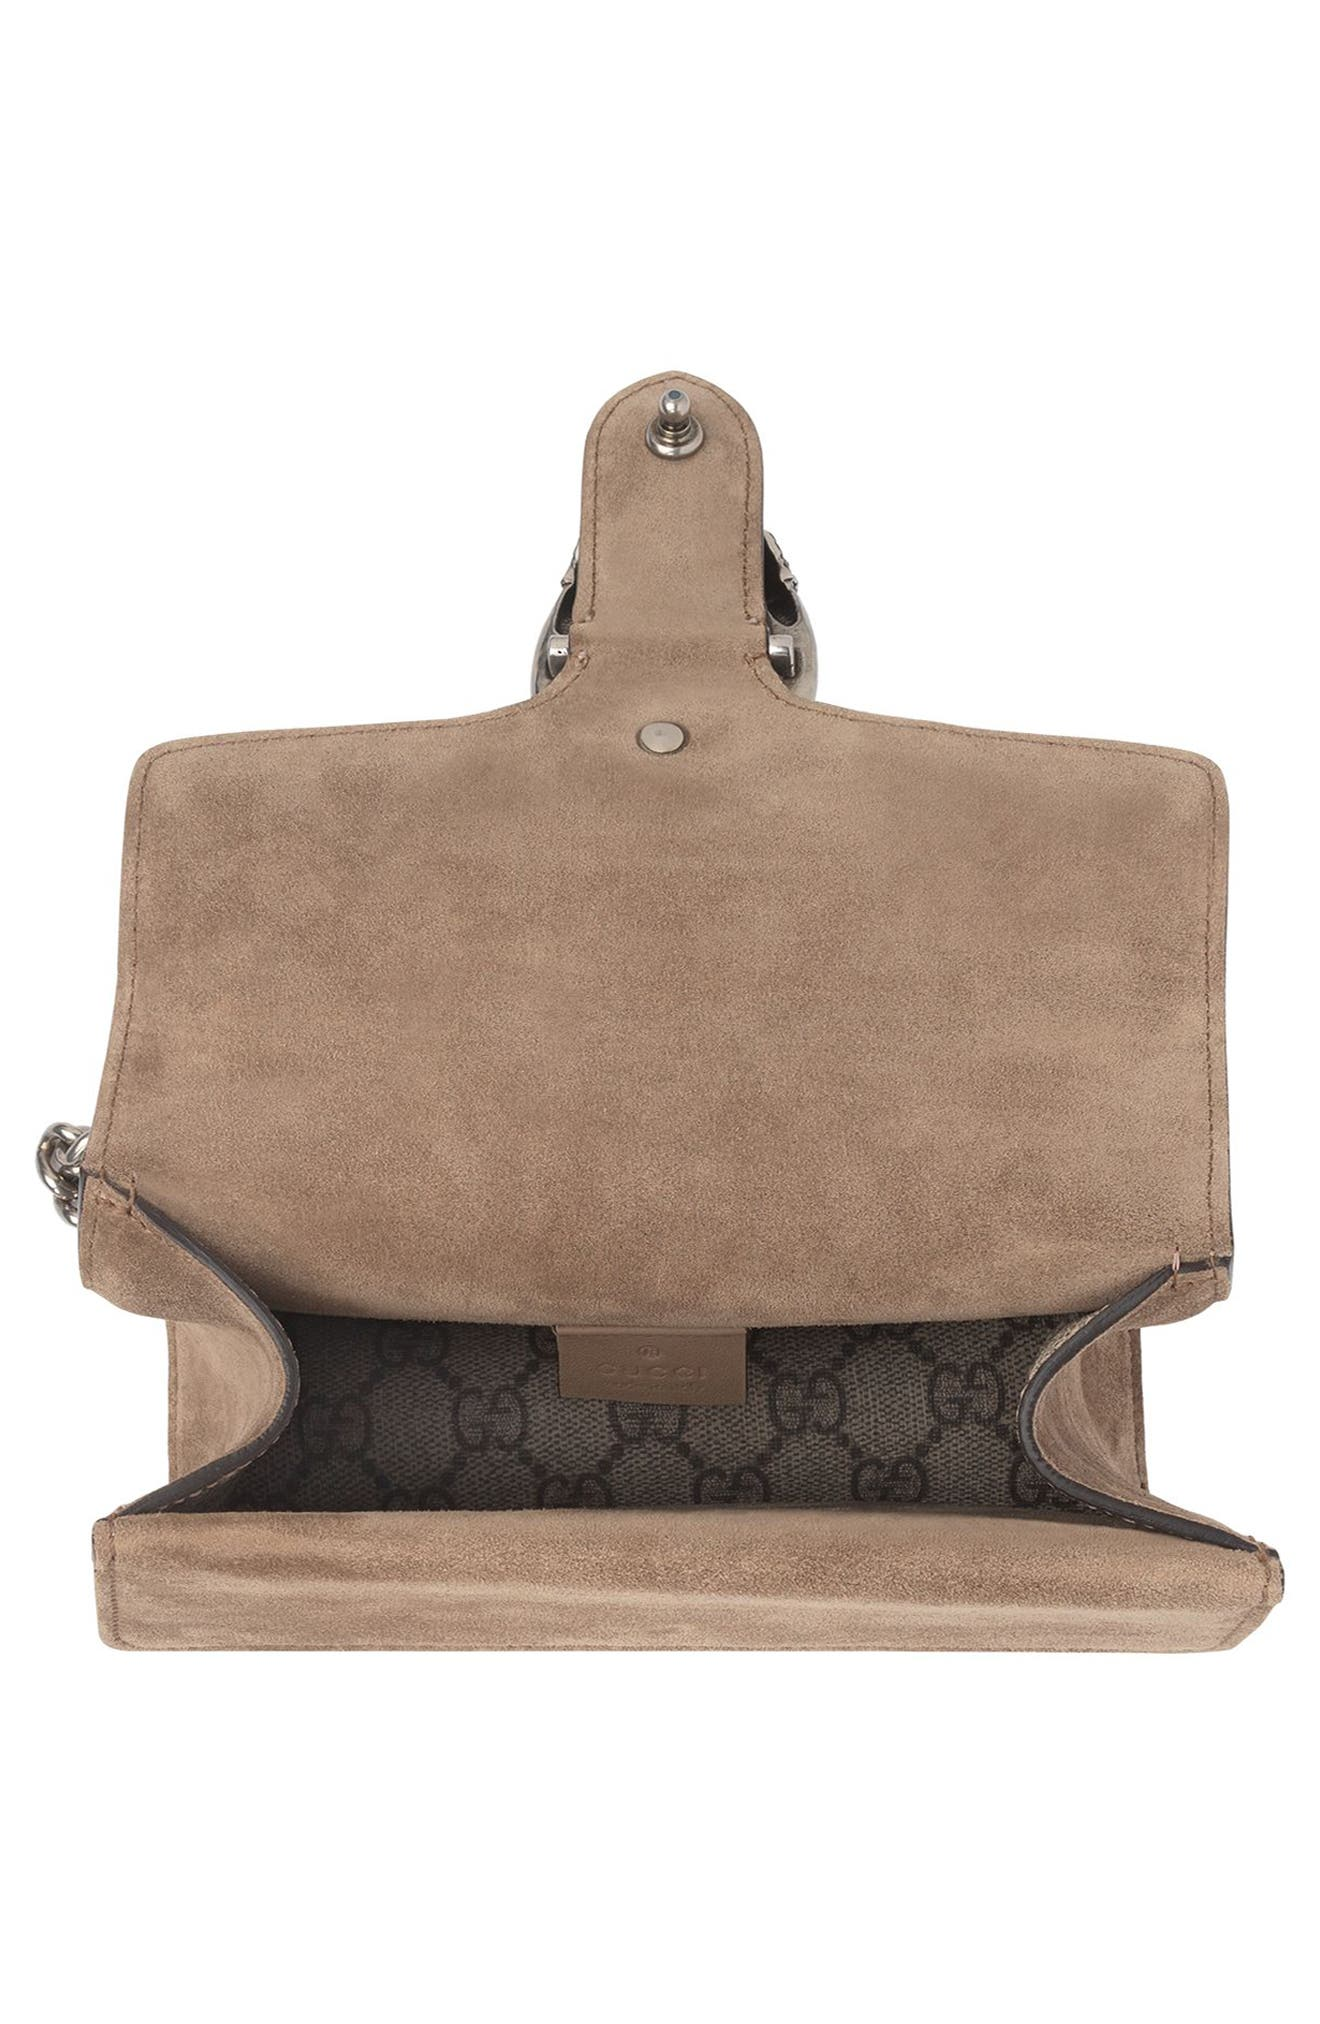 GUCCI,                             Mini Dionysus GG Supreme Shoulder Bag,                             Alternate thumbnail 4, color,                             BEIGE EBONY/ TAUPE